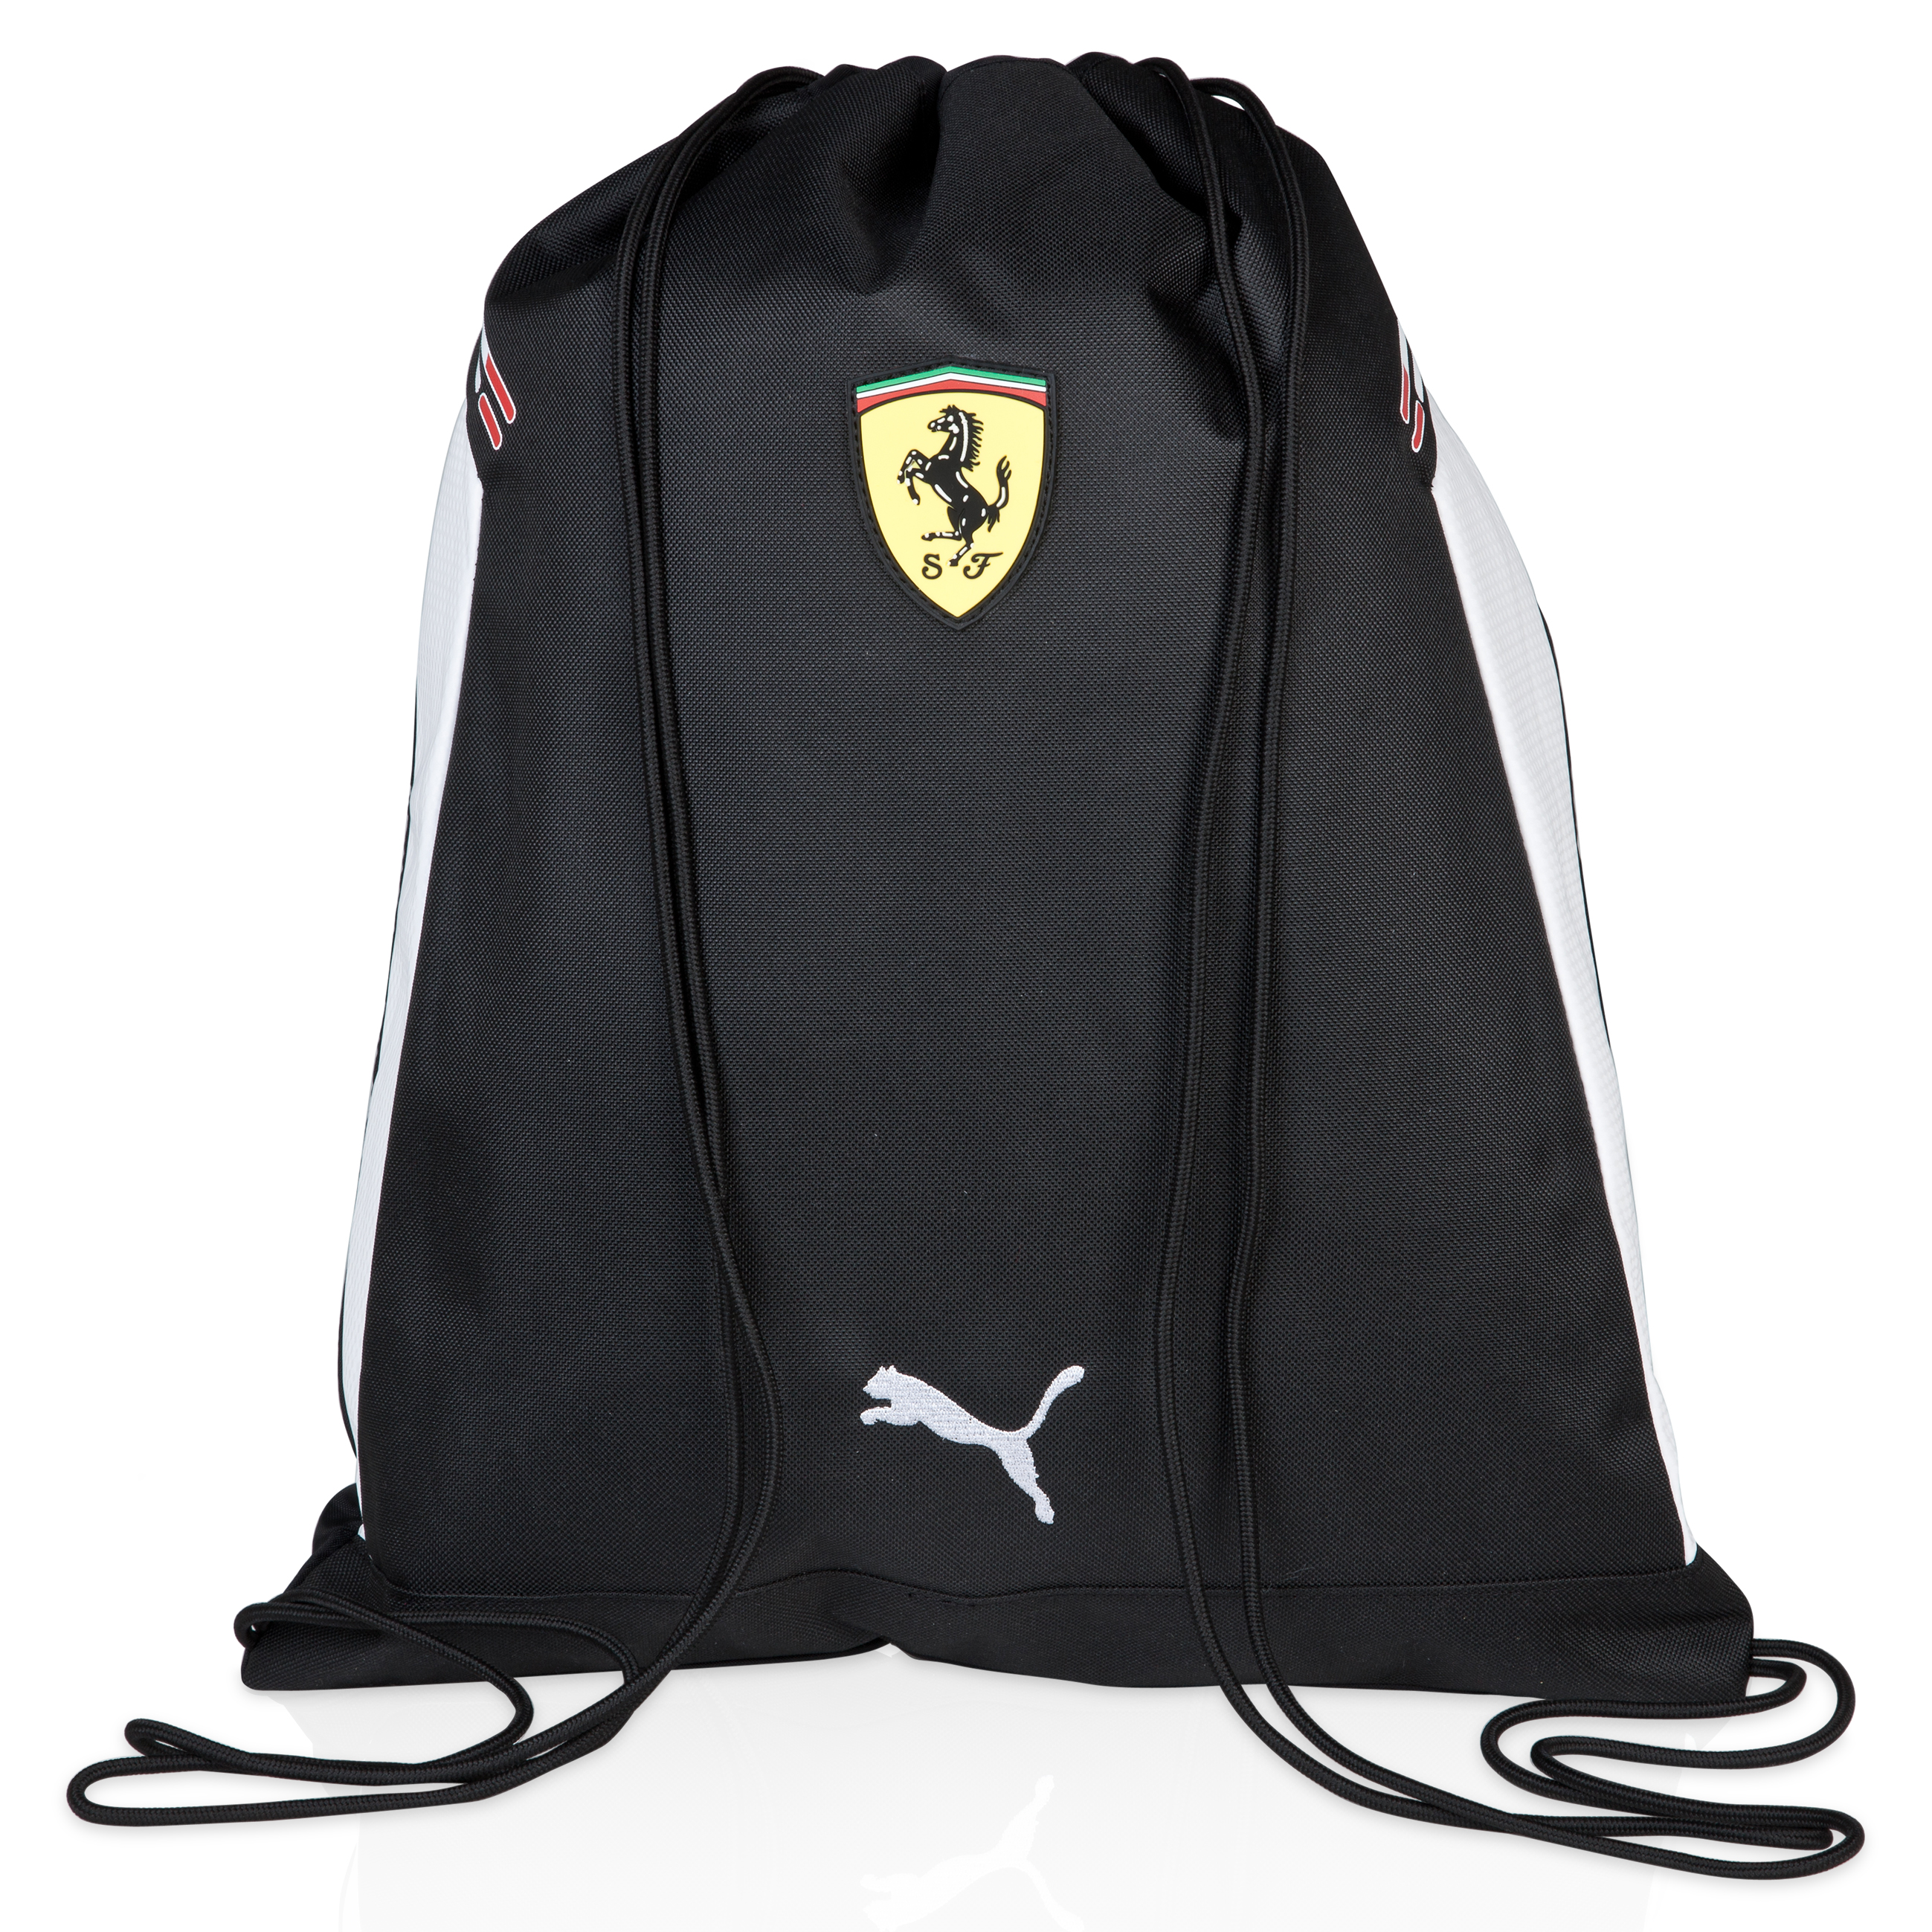 Scuderia Ferrari Replica Gym Sack - Black/White